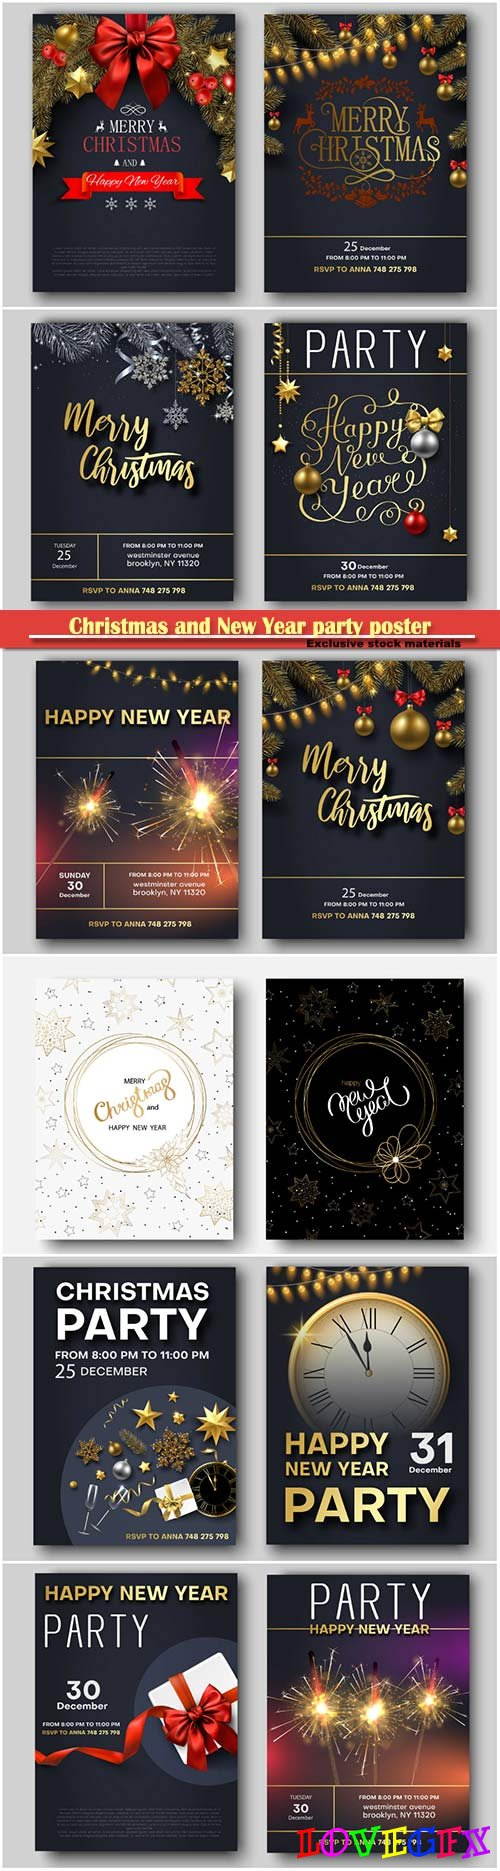 Christmas and New Year party poster or invitation vector templates